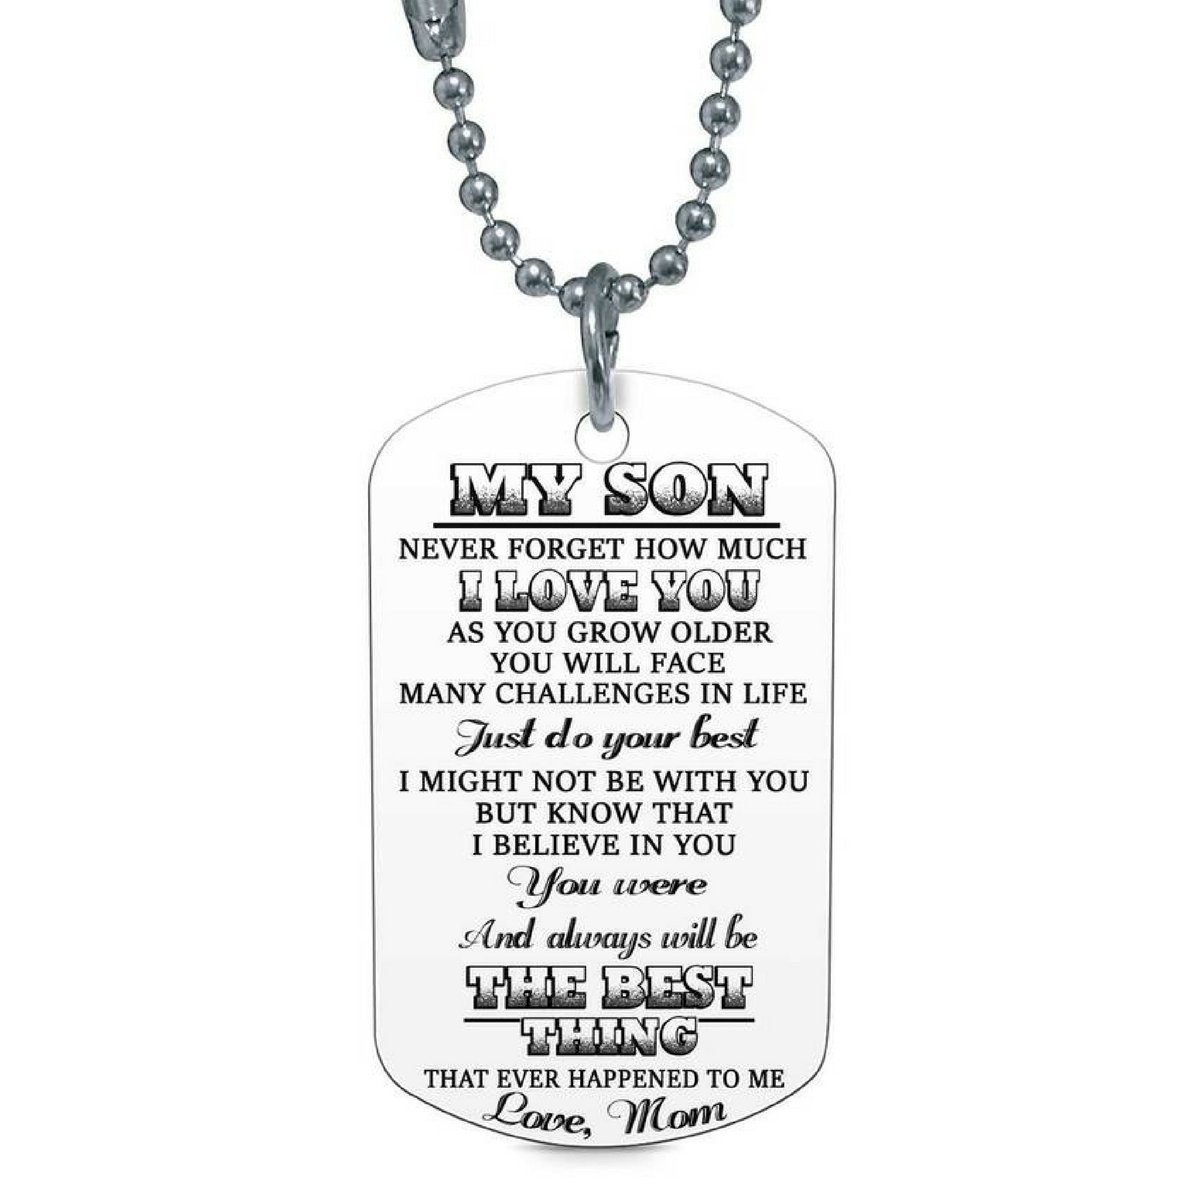 My Son Never Forget How Much I Love Mom Mommy Dog Tag Military Air Force Navy Coast Guard Necklace Ball Chain Gift for Best Son Birthday Graduation Stainless Steel by Stashix (Image #1)